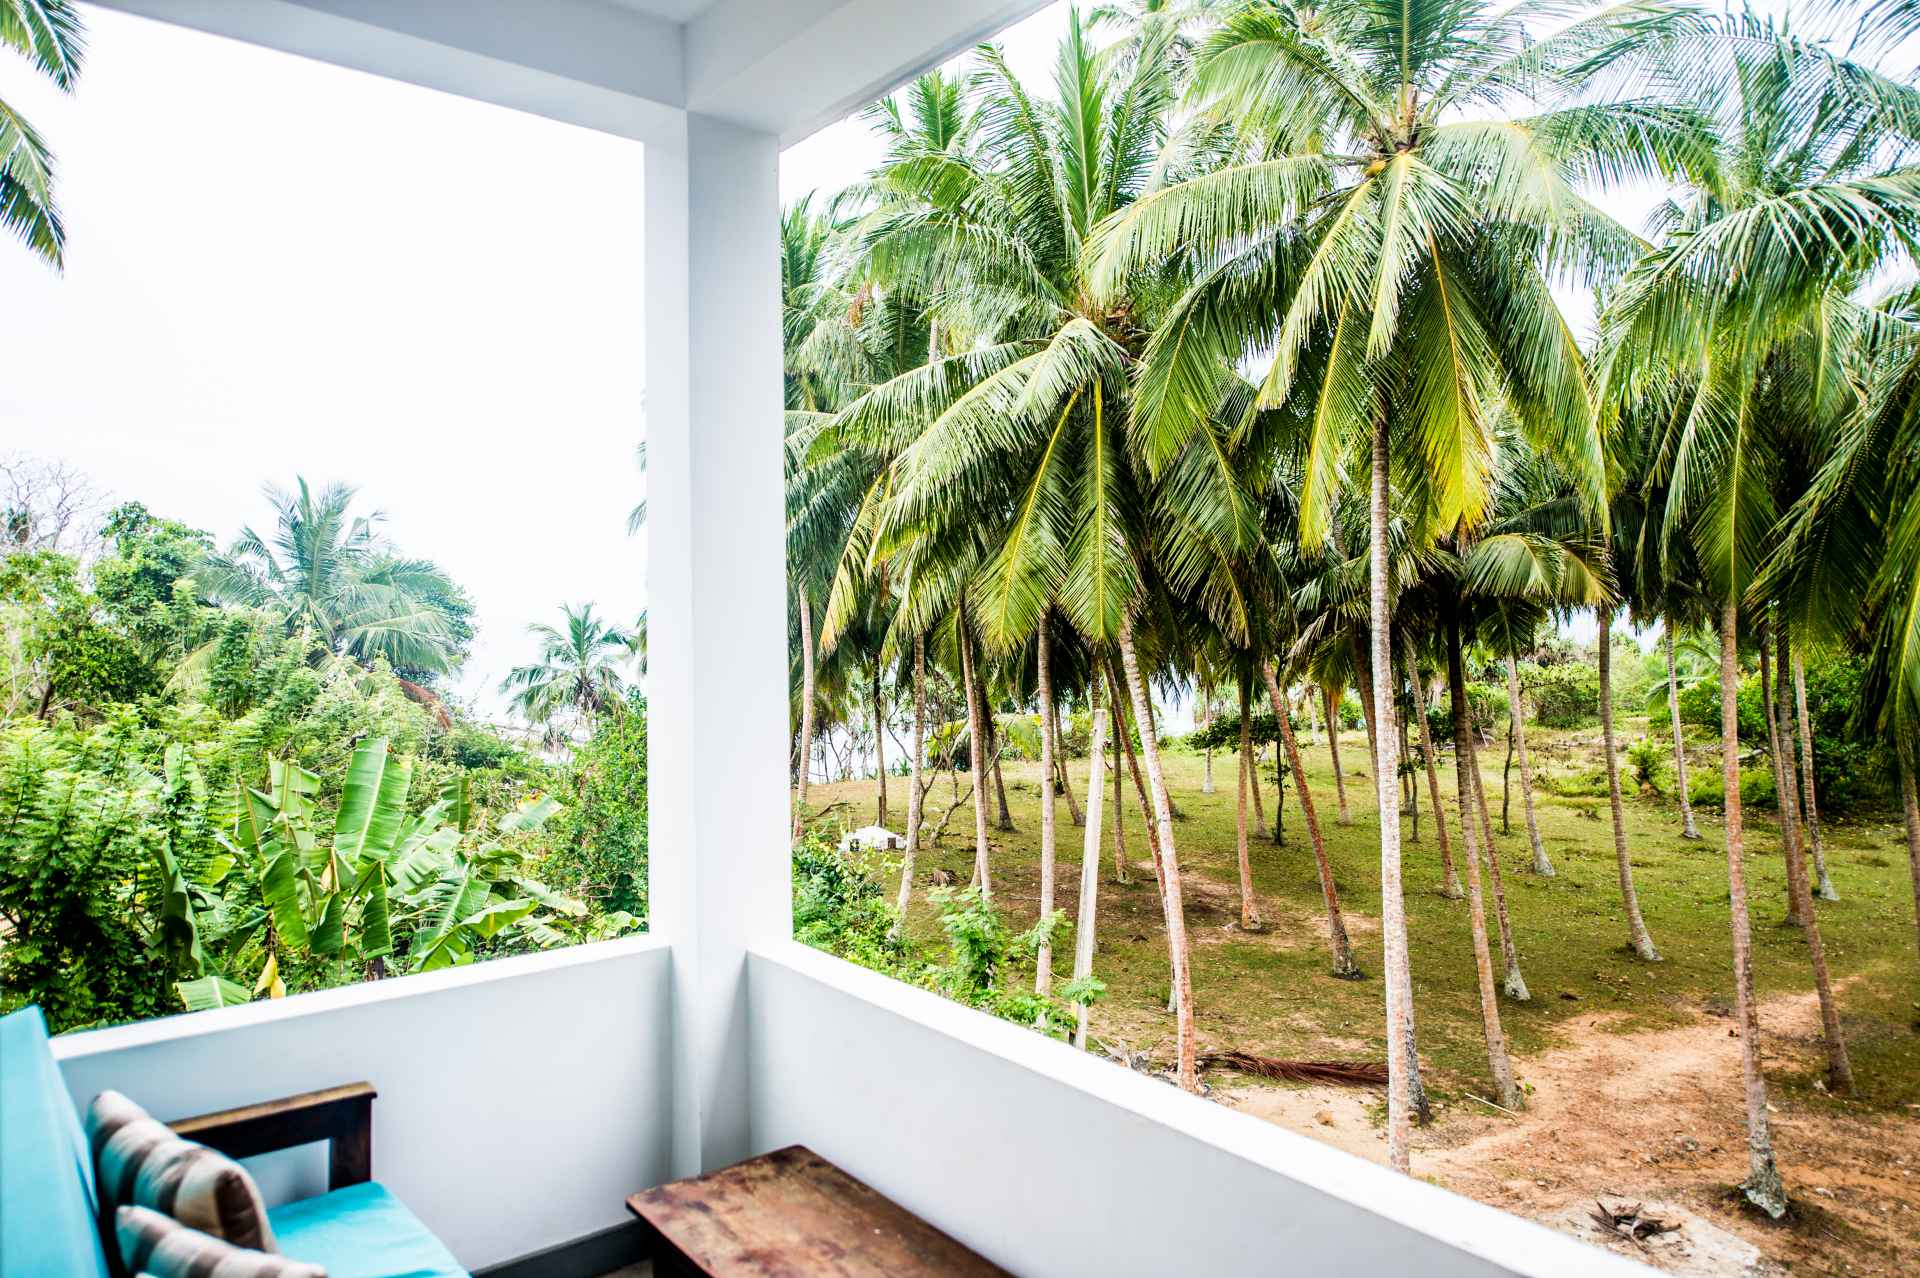 Sri-Lanka-Jasper-house-room-veiw-explosed-palm